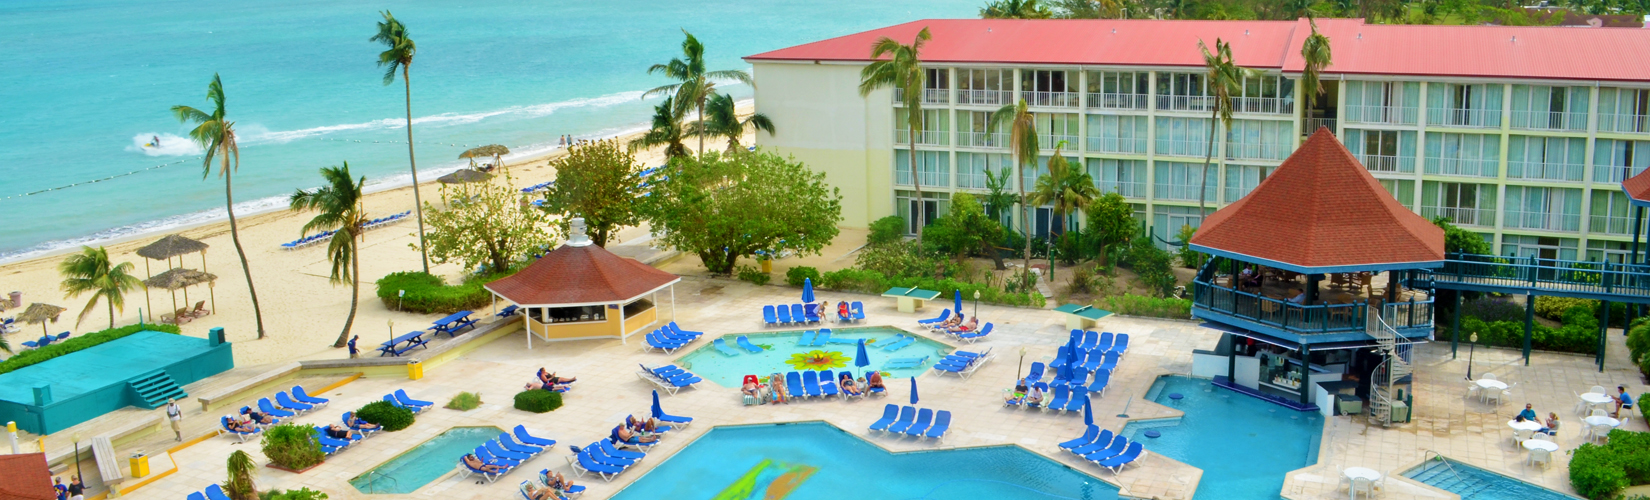 All Inclusive Tips and Tricks to Ensure Your Resort Stay is Rockin' :: I've Been Bit! Travel Blog